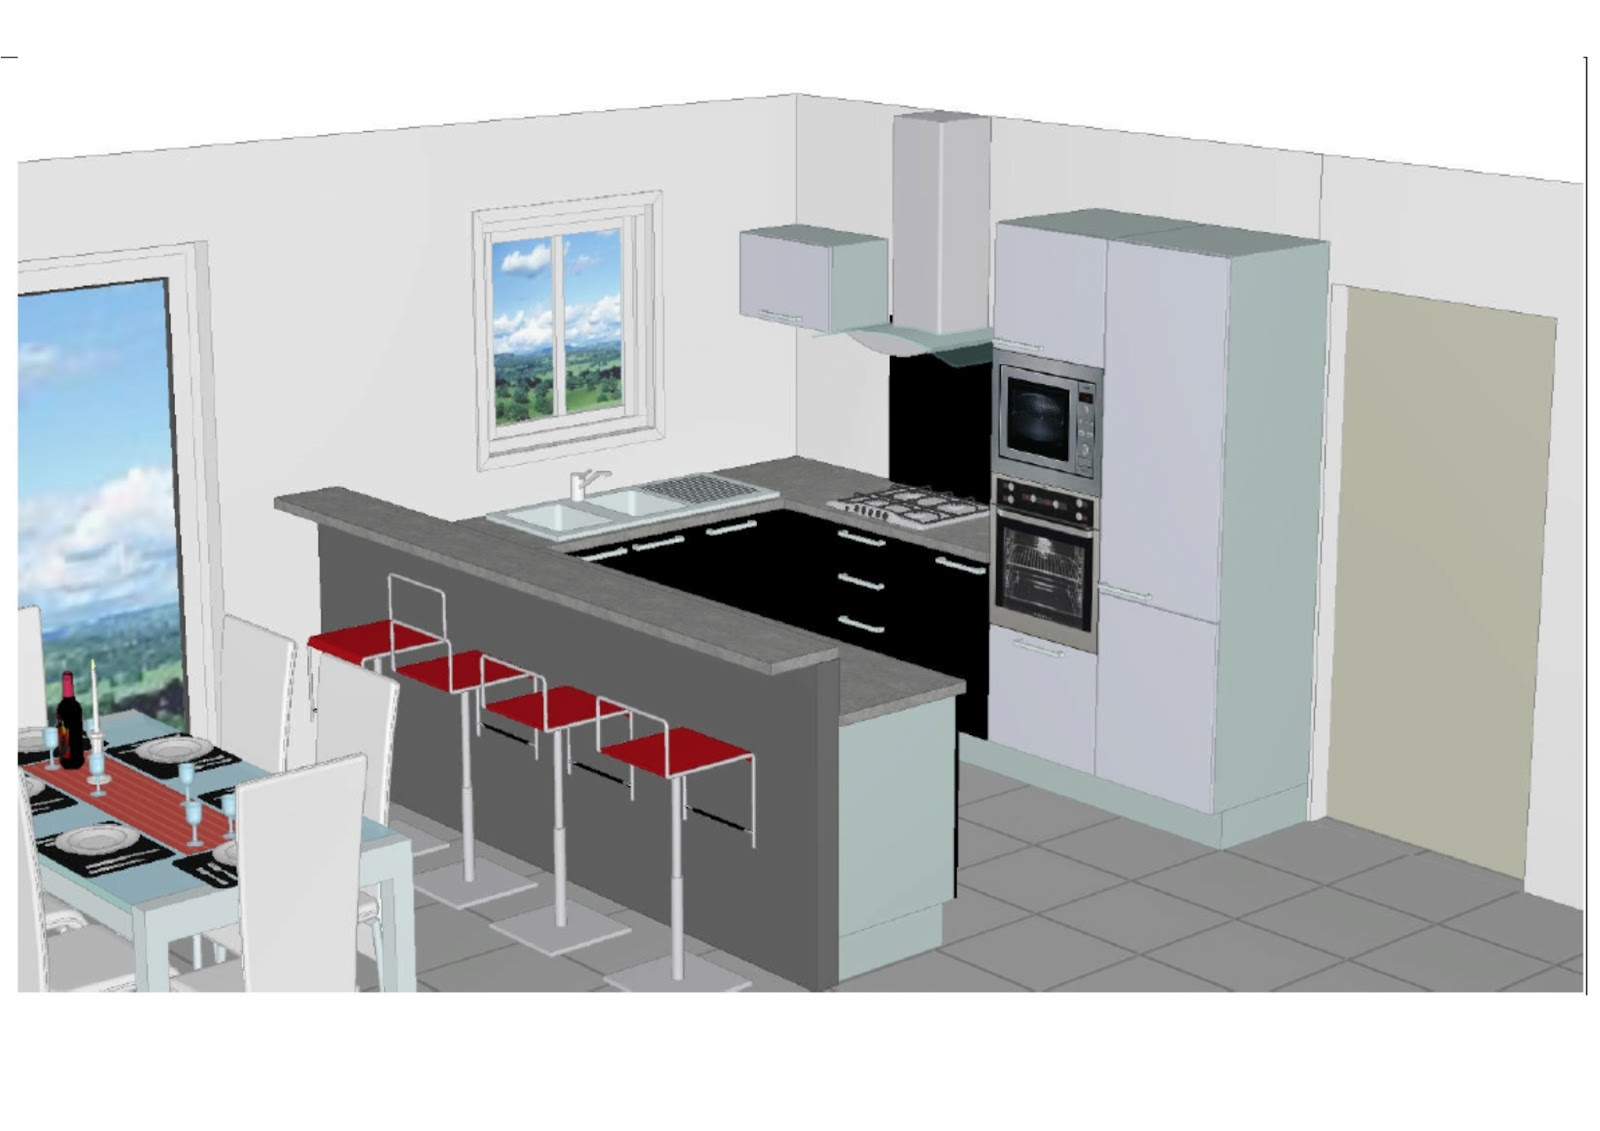 Maison sponsoris e 41 label rt 2012 oucques 41290 for Plan amenagement cuisine 10m2